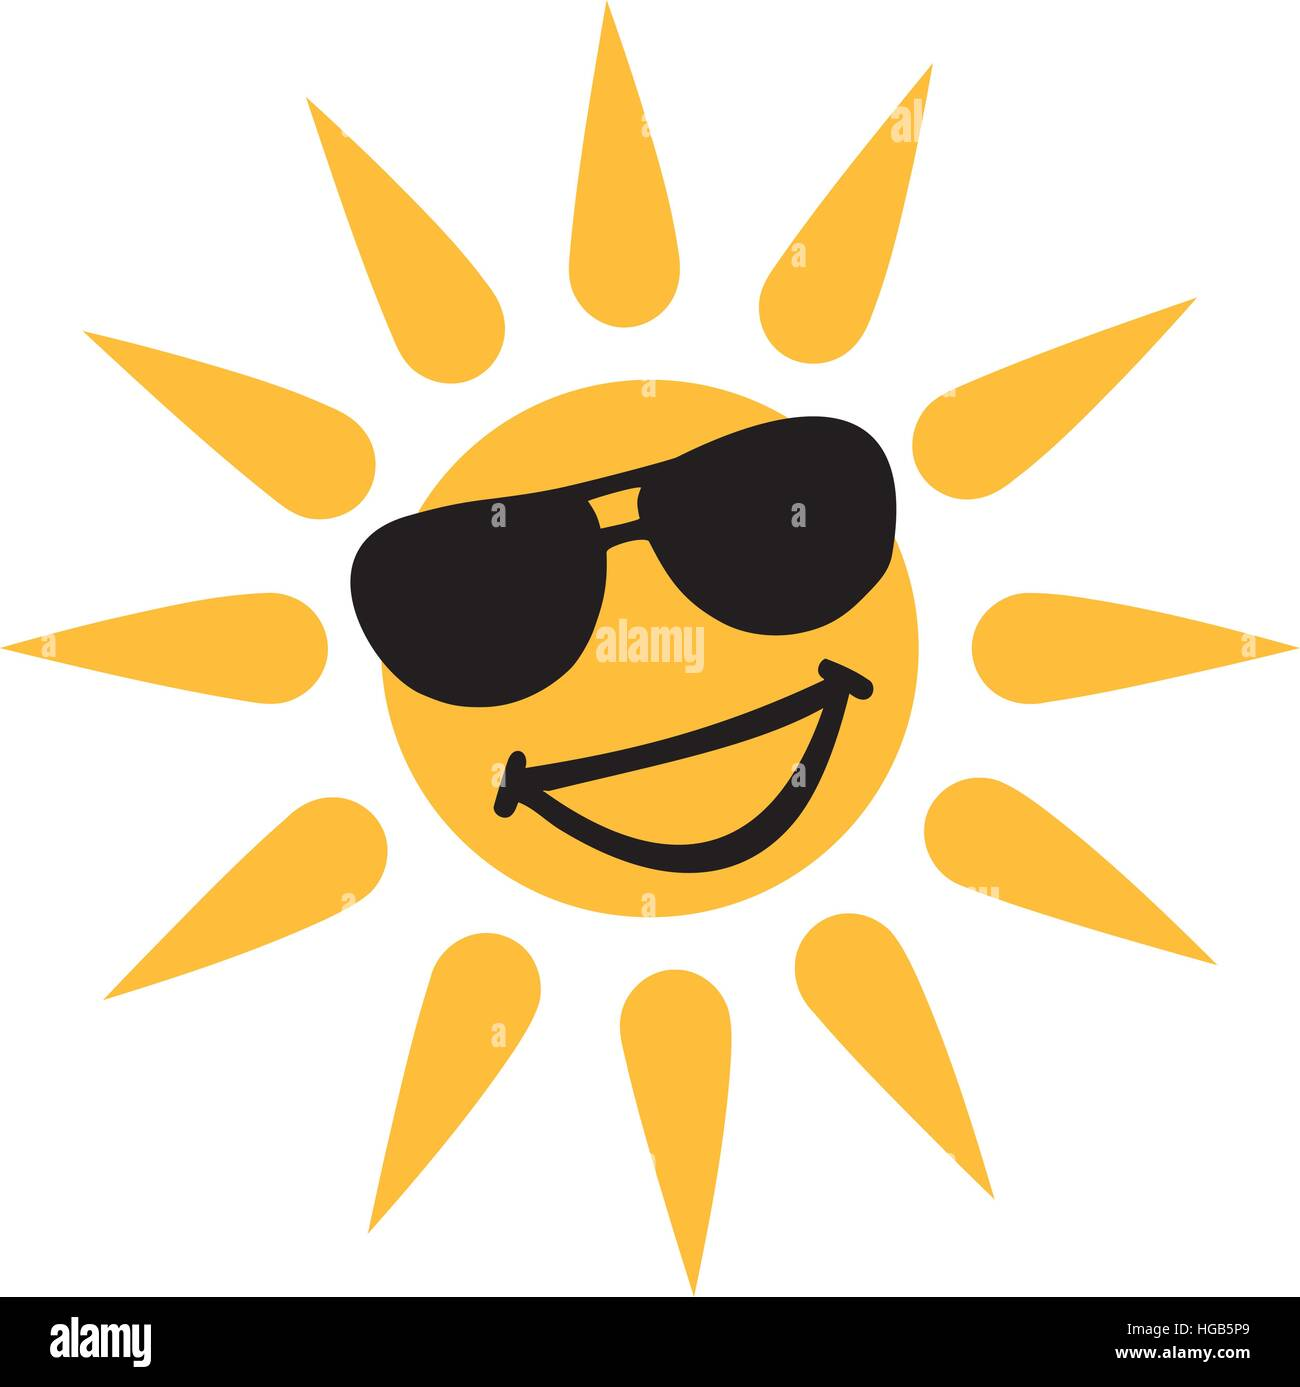 Hot weather - Smiling sun with sun glasses - Stock Vector